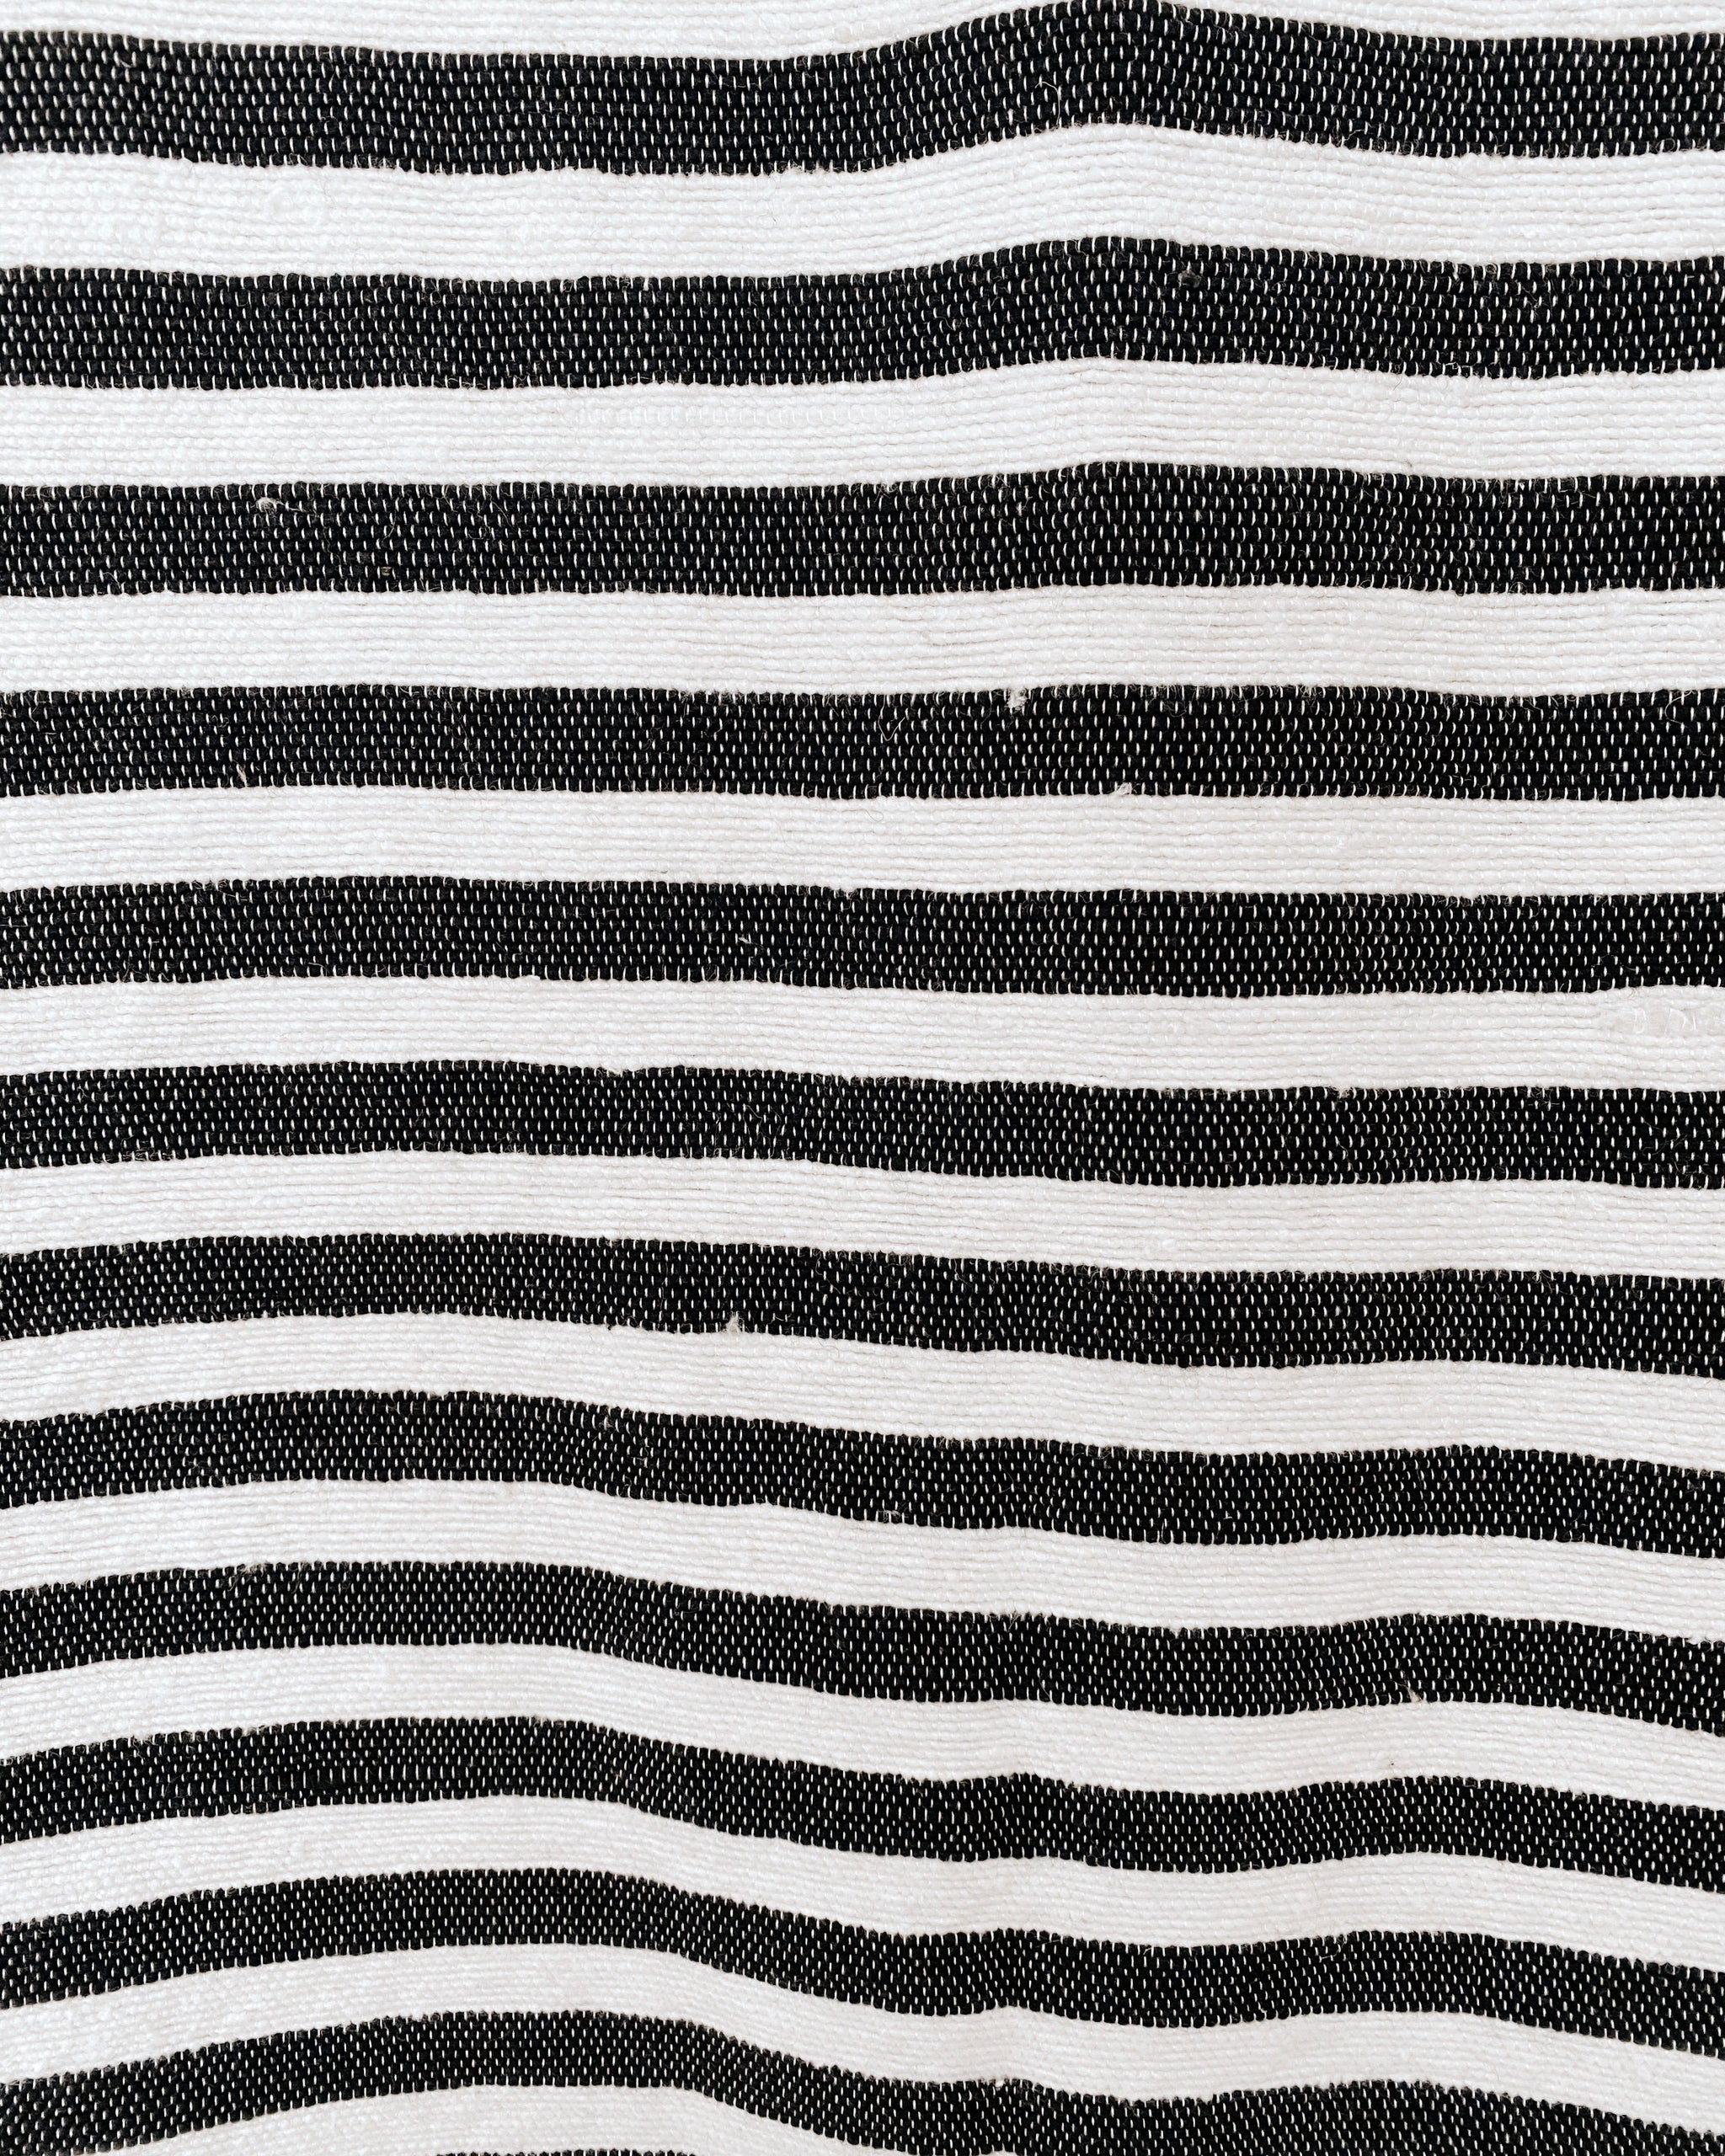 Black Rock Pom Pom Blanket, White with Black Stripes and Black Pom Poms, 100% Cotton Moroccan Blanket